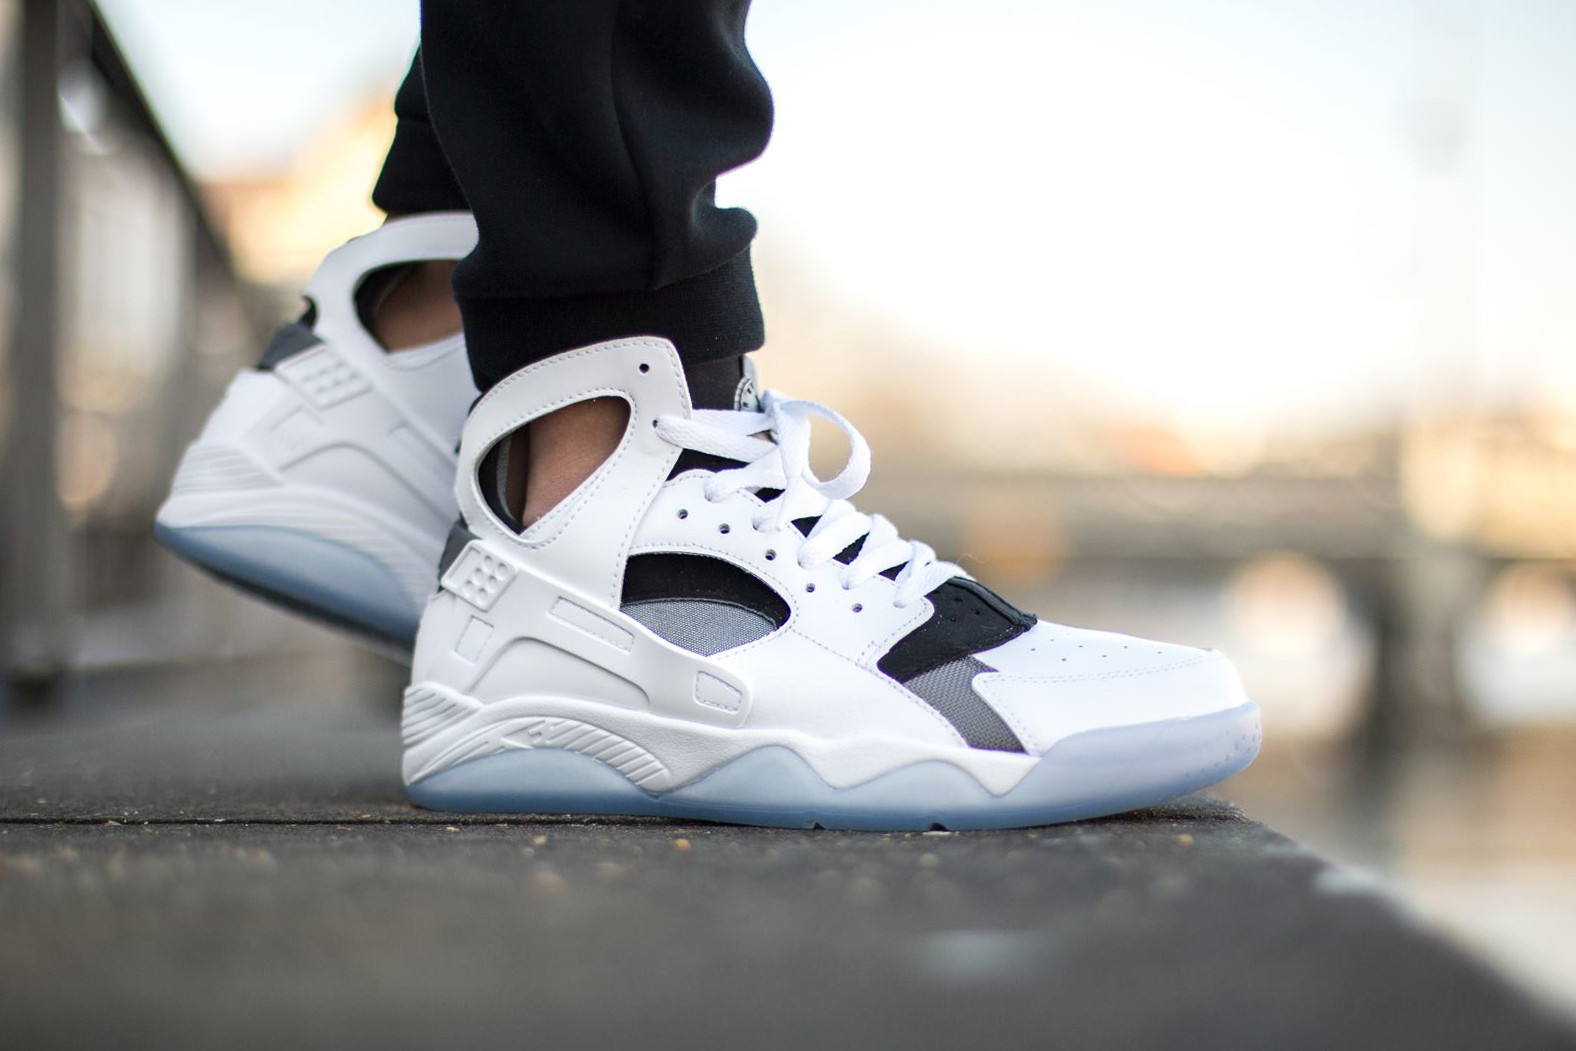 Nike\u0027s Air Flight Huarache is set to return this spring in an all,new  colorway. The high top model